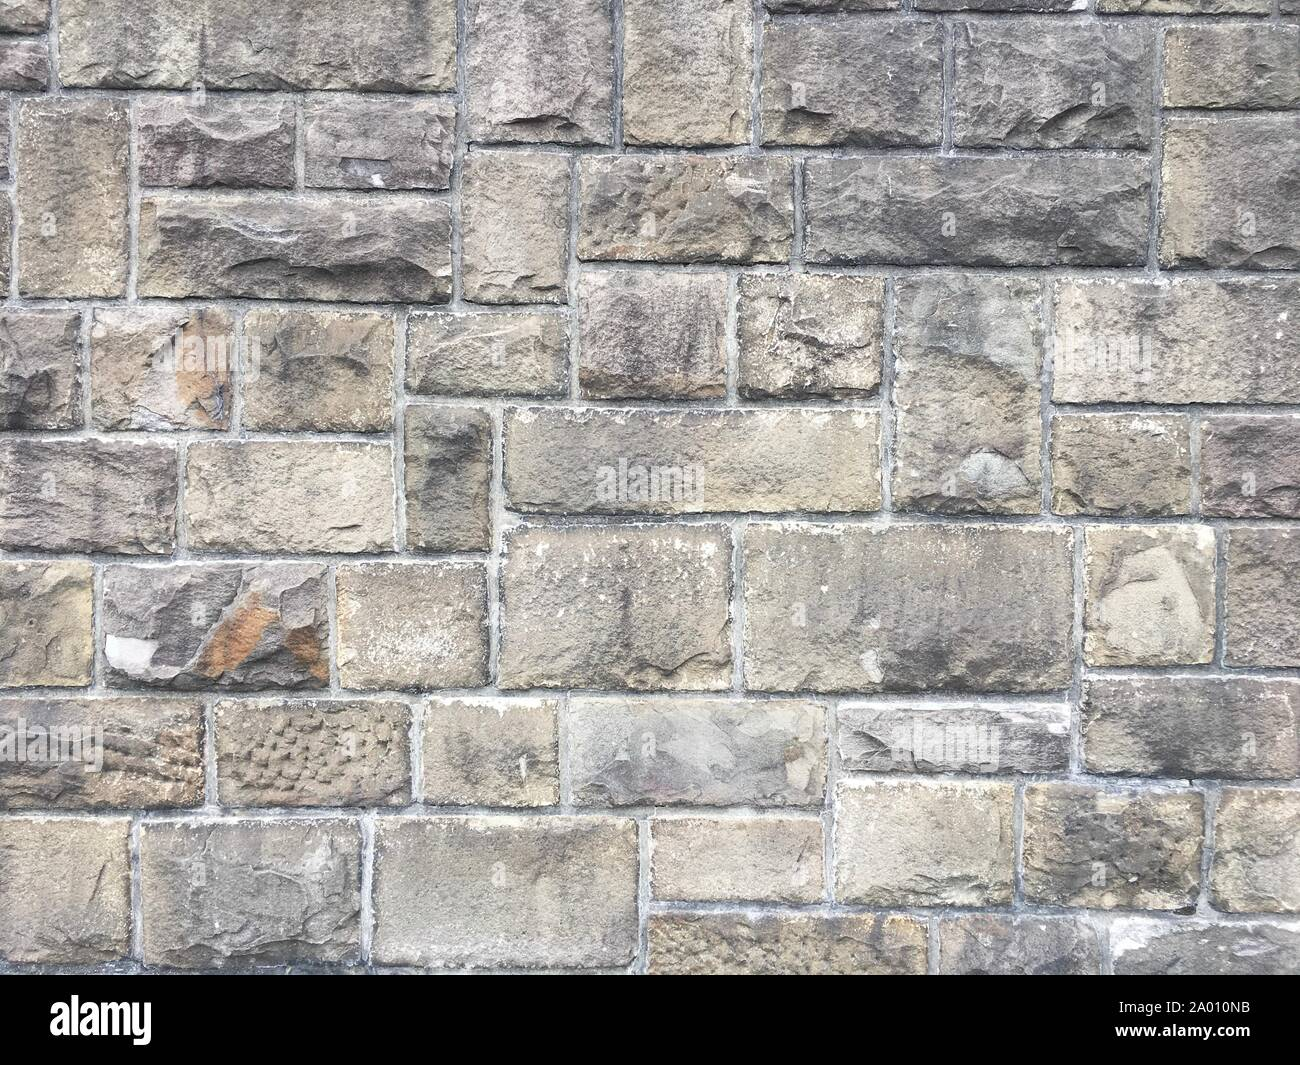 Stone Wall Texture with big bricks on ancient historic city wall in Germany, Europe. Can be used as a texture or background. Stock Photo